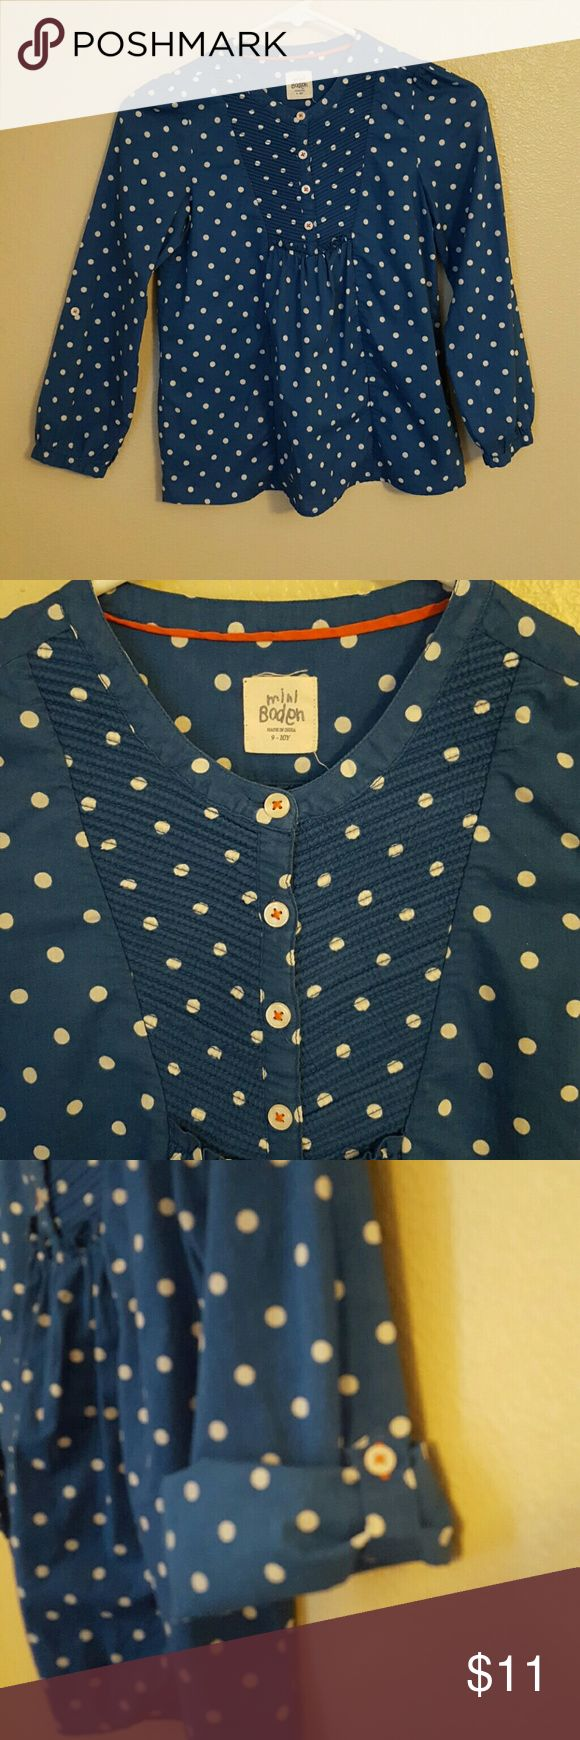 Mini Boden girls 9-10y blue white polkadot blouse This Mini Boden blue with white polka dot blouse is size 9/10. It is a beautiful almost teal blue. Option to cut the sleeves and button them. For buttons in front with a smocked panel and pleated detail. Mini Boden Shirts & Tops Blouses